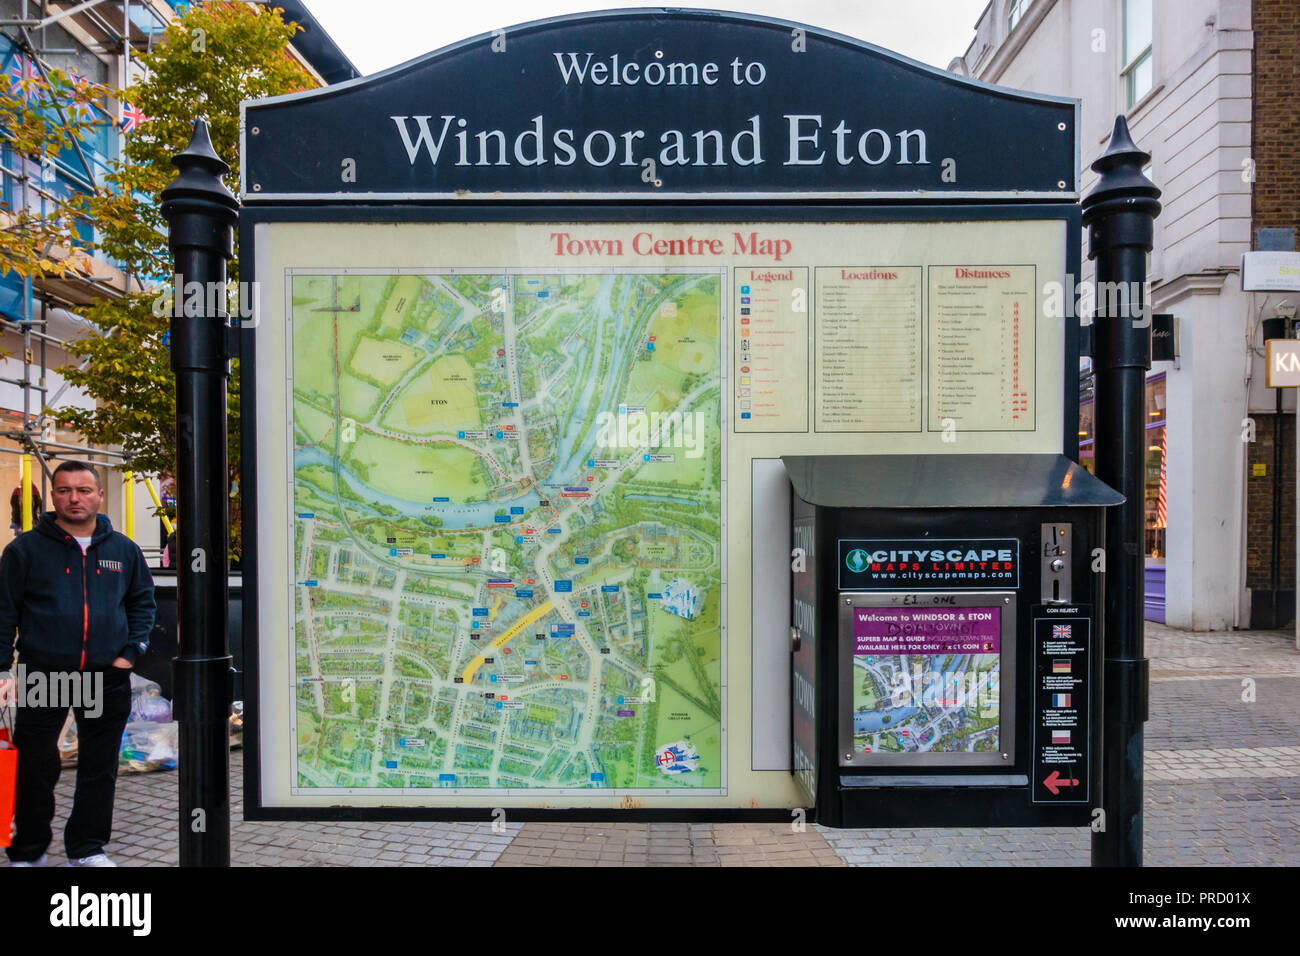 A map of Windsor and Eton town centre in Peascod Street, Windsor, UK. - Stock Image